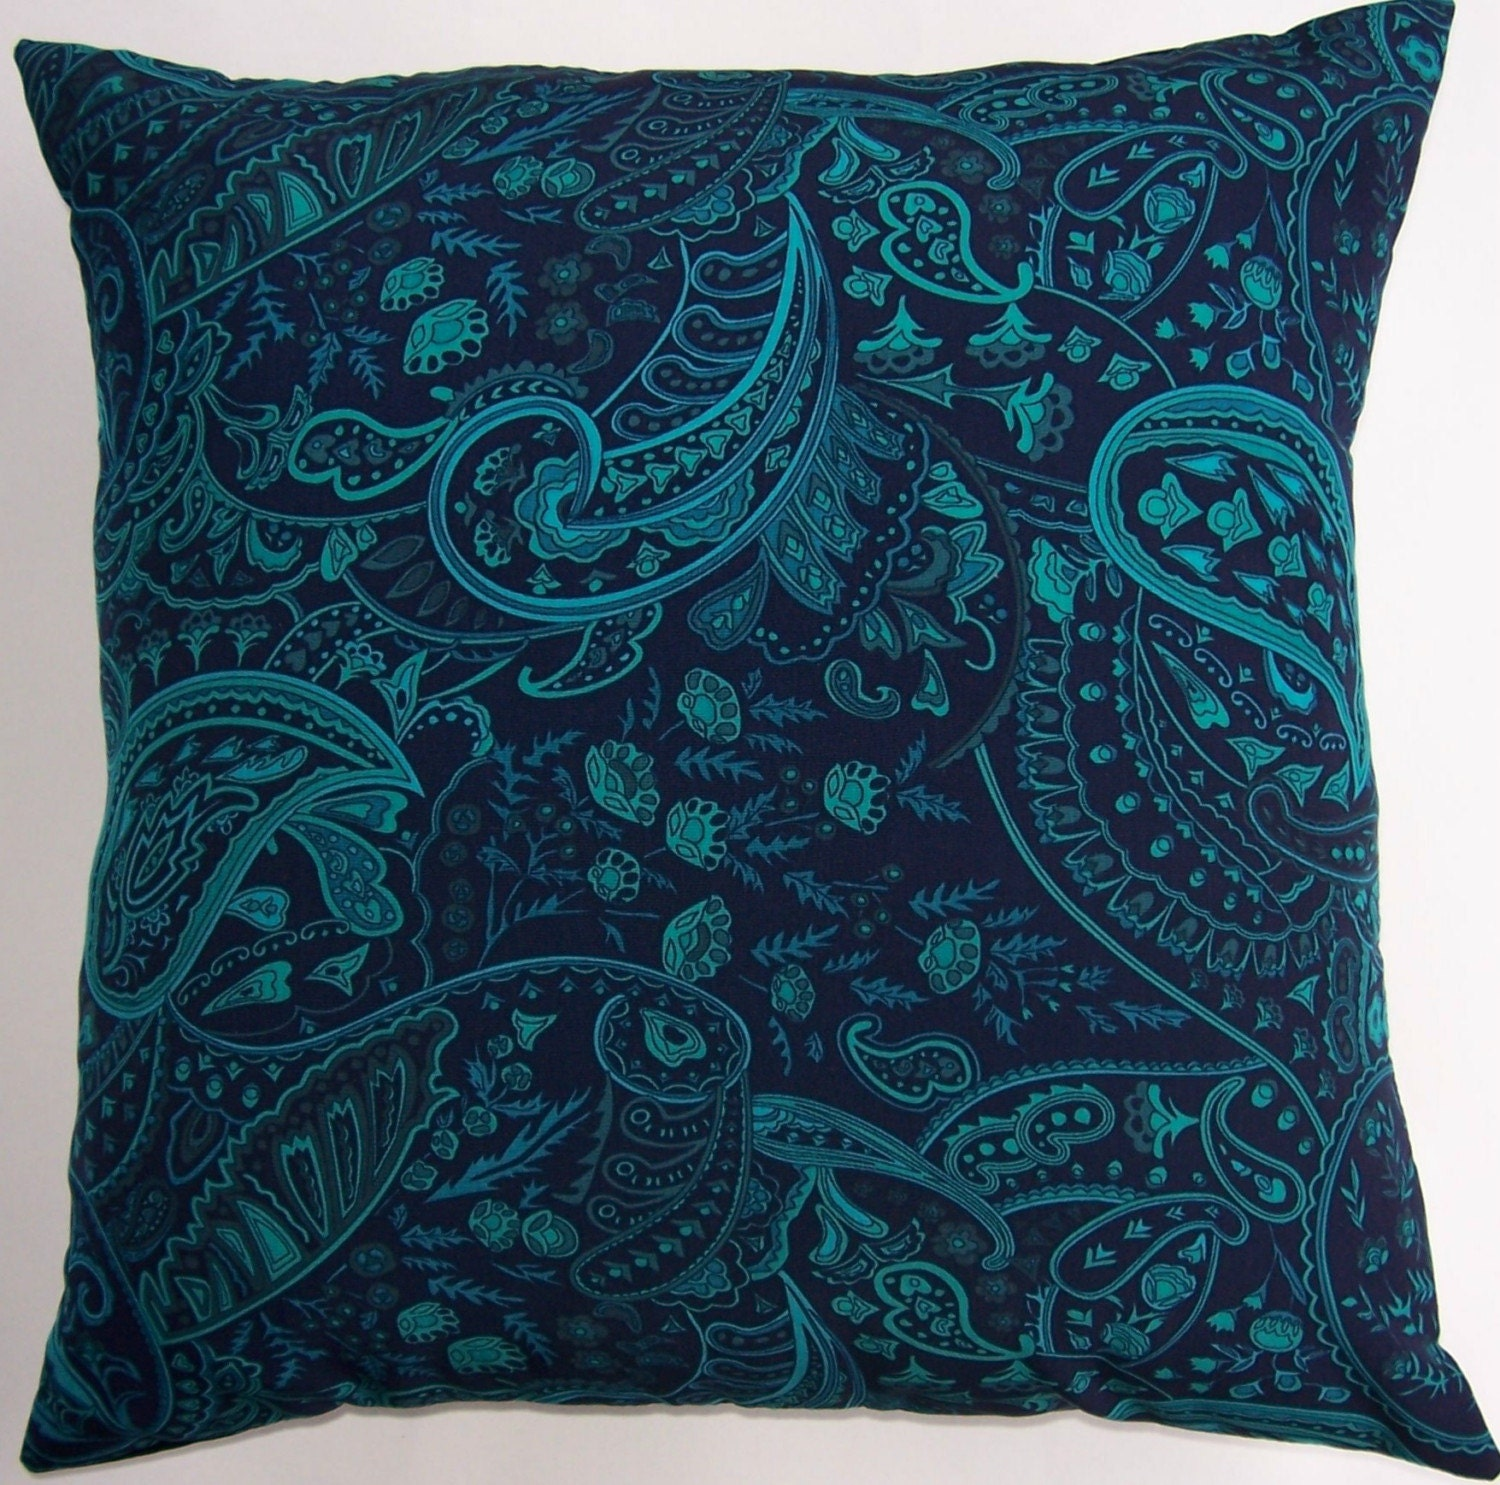 Silky Soft Midnight Blue And Teal Paisley Pillow Cover